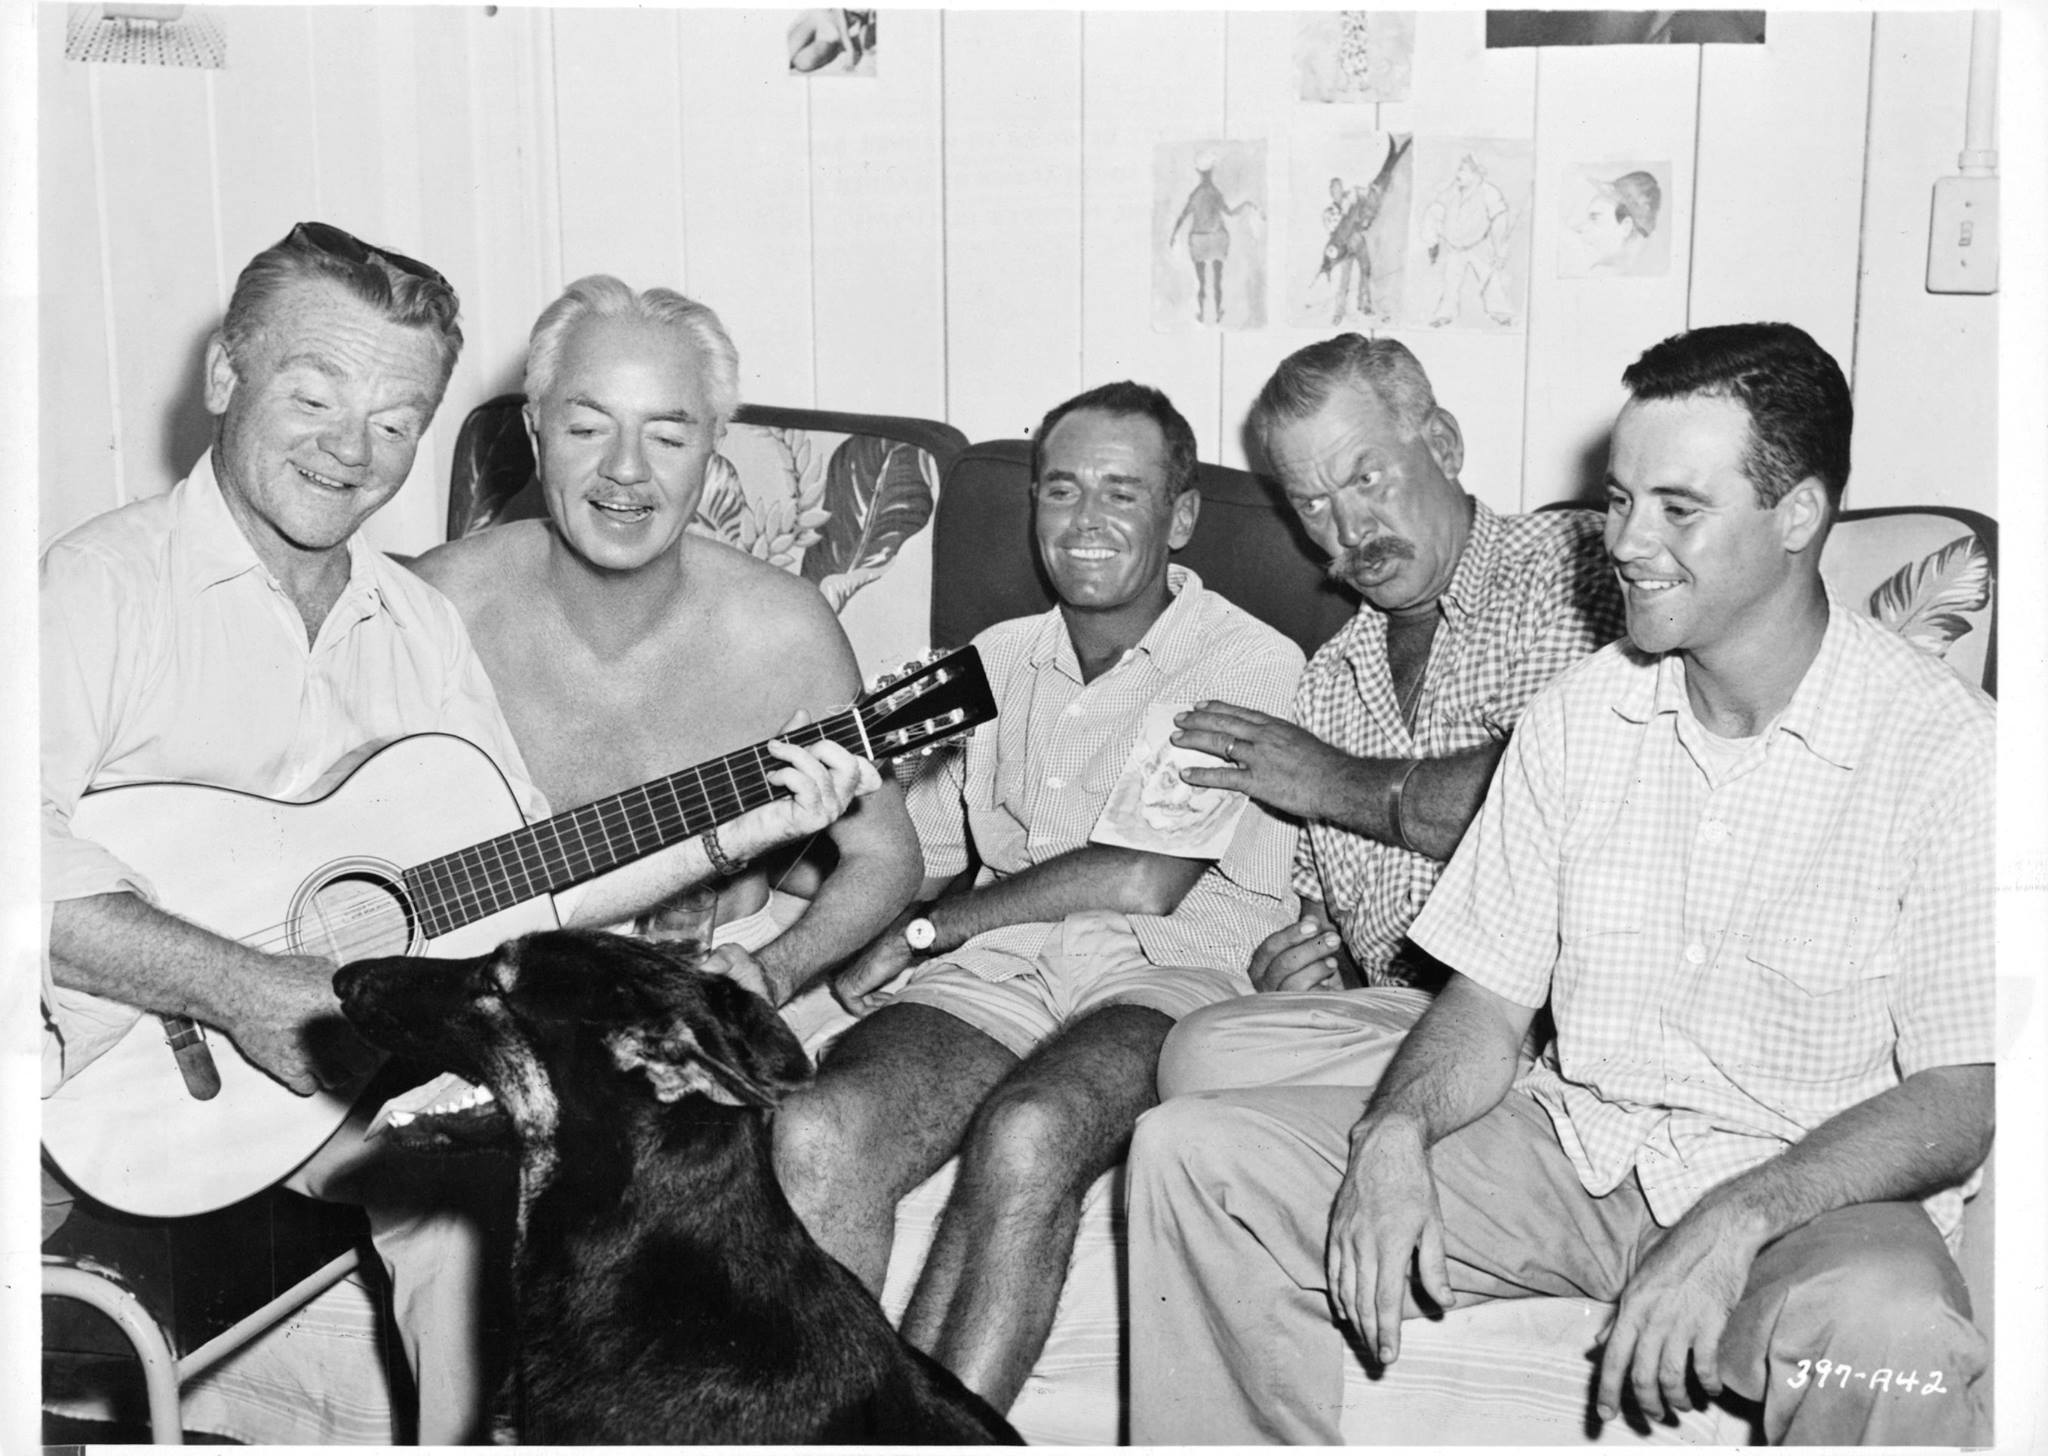 James Cagney, William Powell, Henry Fonda, Ward Bond and Jack Lemmon